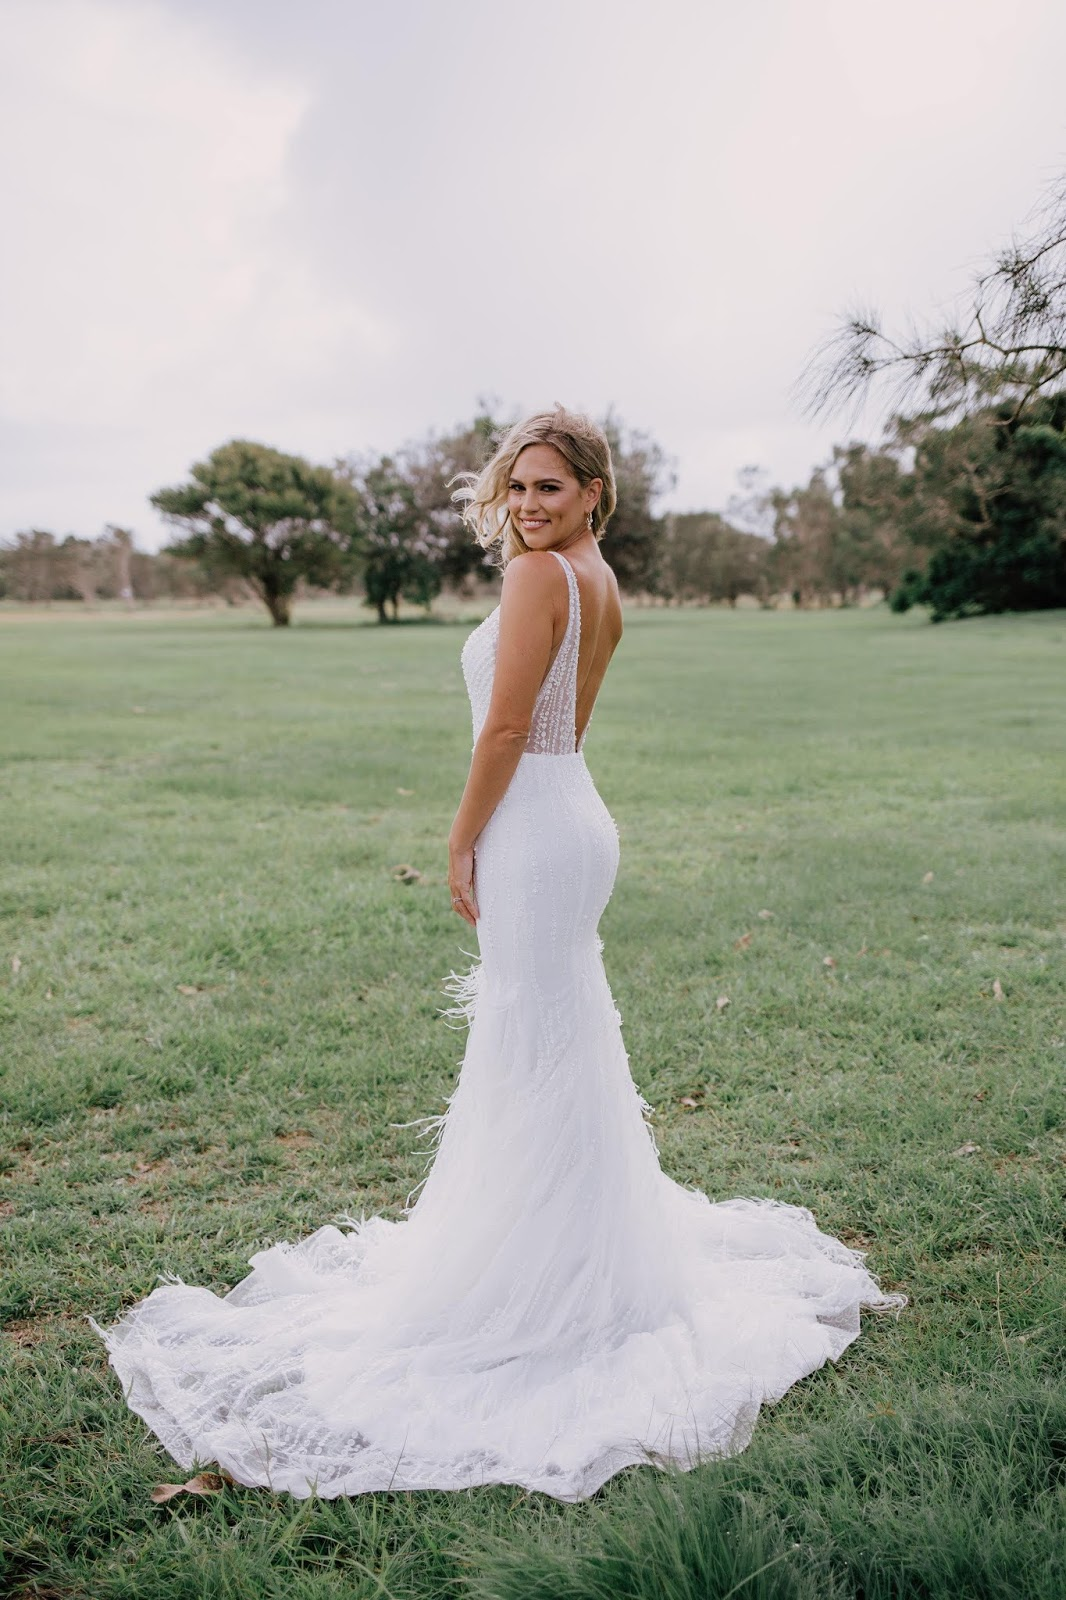 BYRON BAY WEDDING DRESSES BRIDAL GOWNS KIRKWILL COX PHOTOGRAPHY